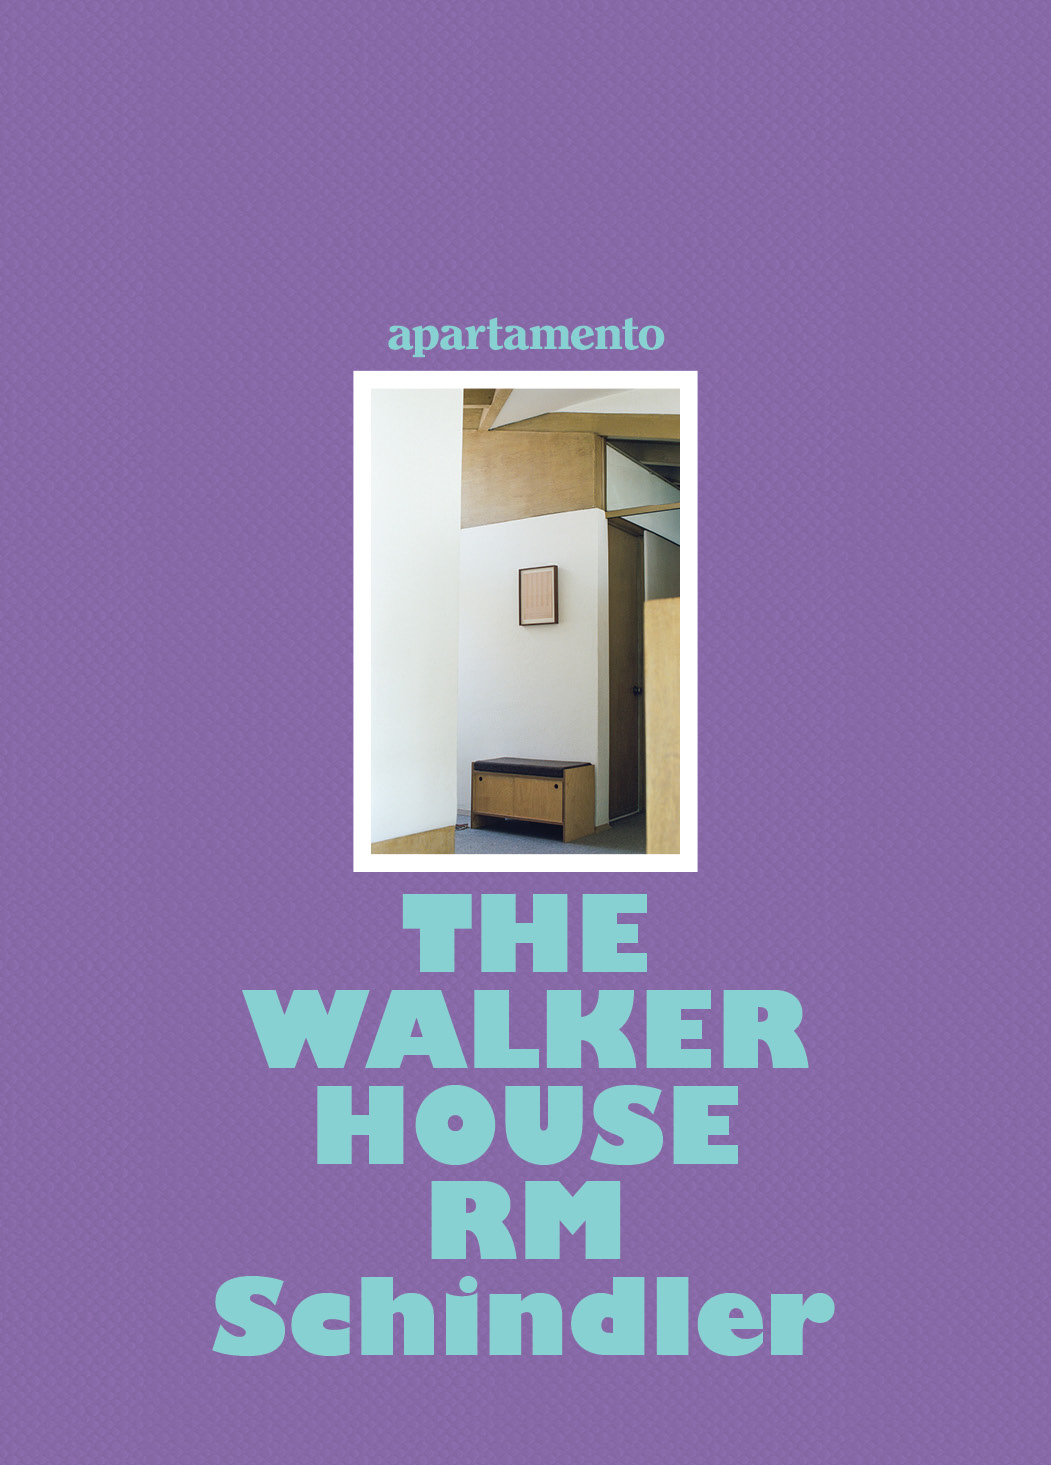 The Walker House RM Schindler Cover